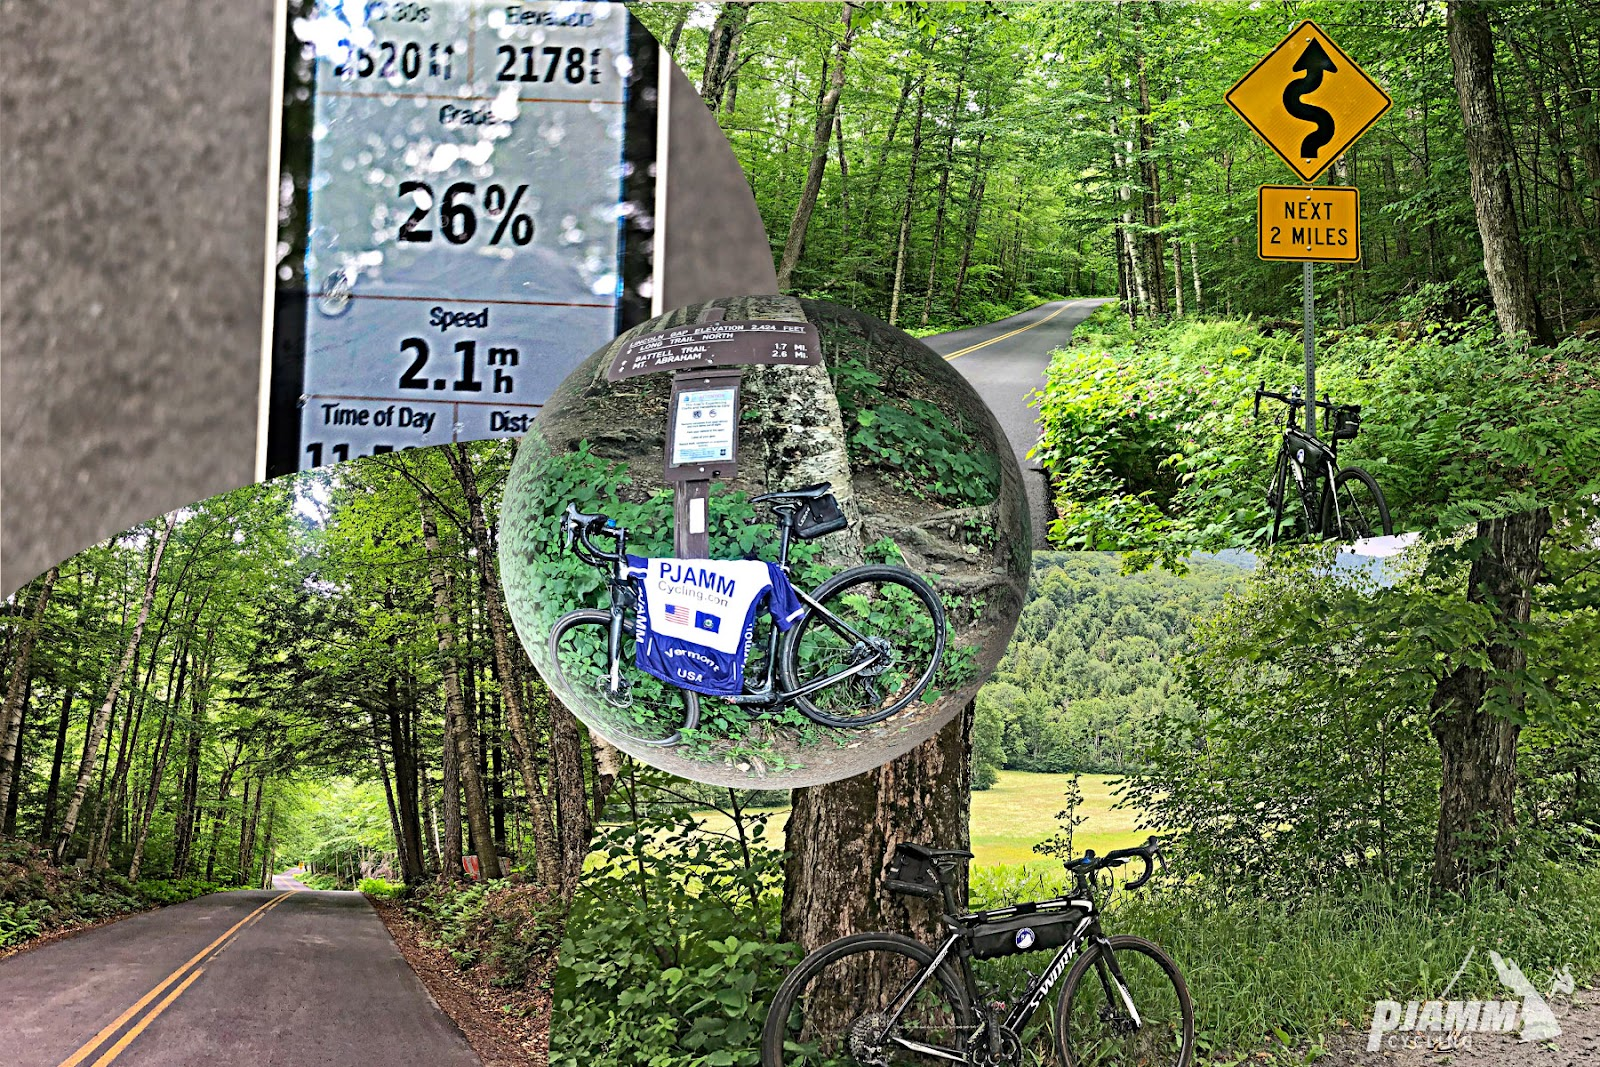 Cycling Lincoln Gap East - Garmin device showing 26% grade, lush tree-lined road with dense canopy and road sign for winding road next two miles, bike propped up against tree overlooking pastureland, bike with PJAMM cycling jersey draped across it propped up on trail sign for Lincoln Gap